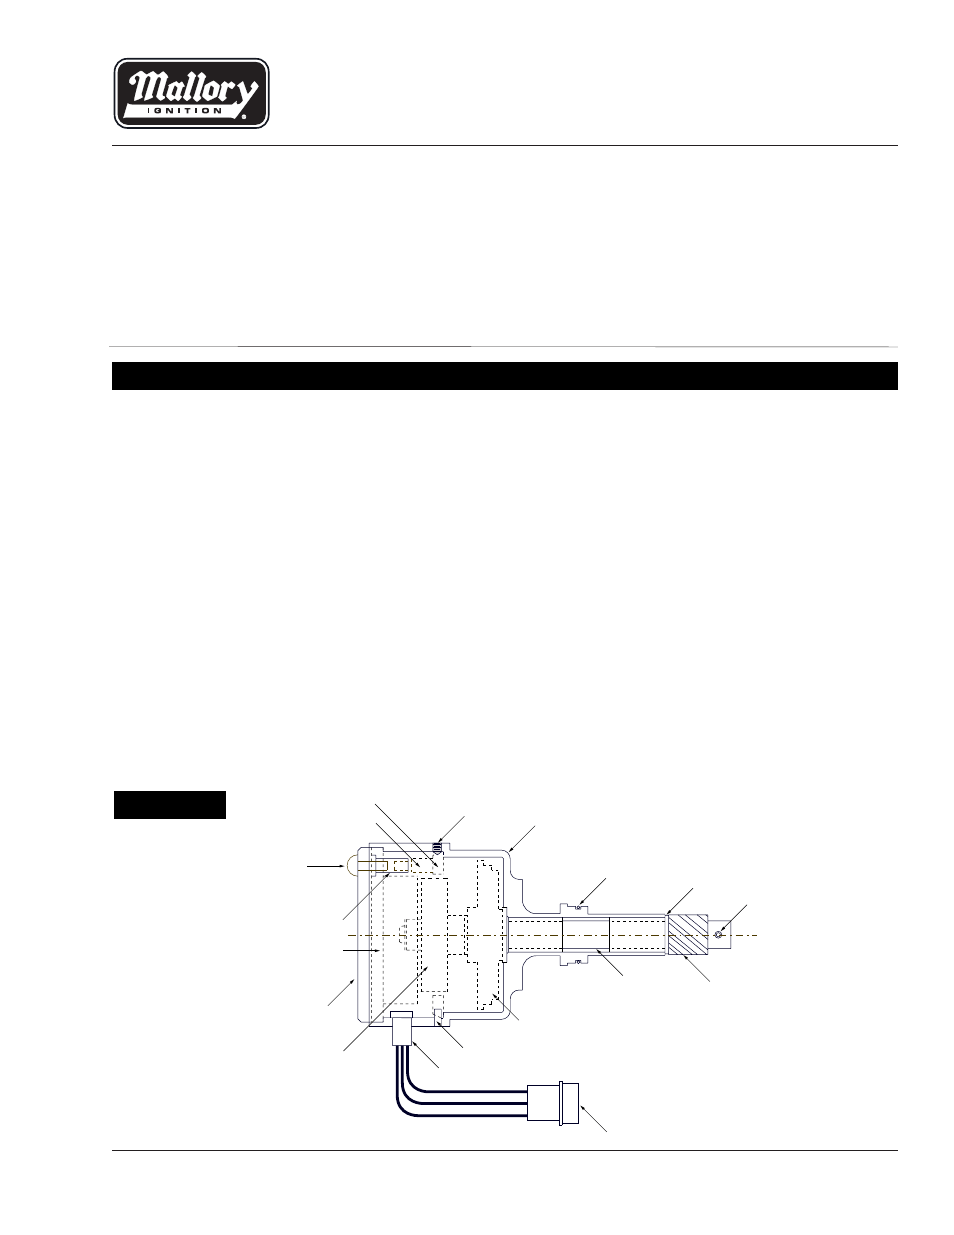 Awesome Find The Answer To This Mallory Unilite Wiring Diagram ...